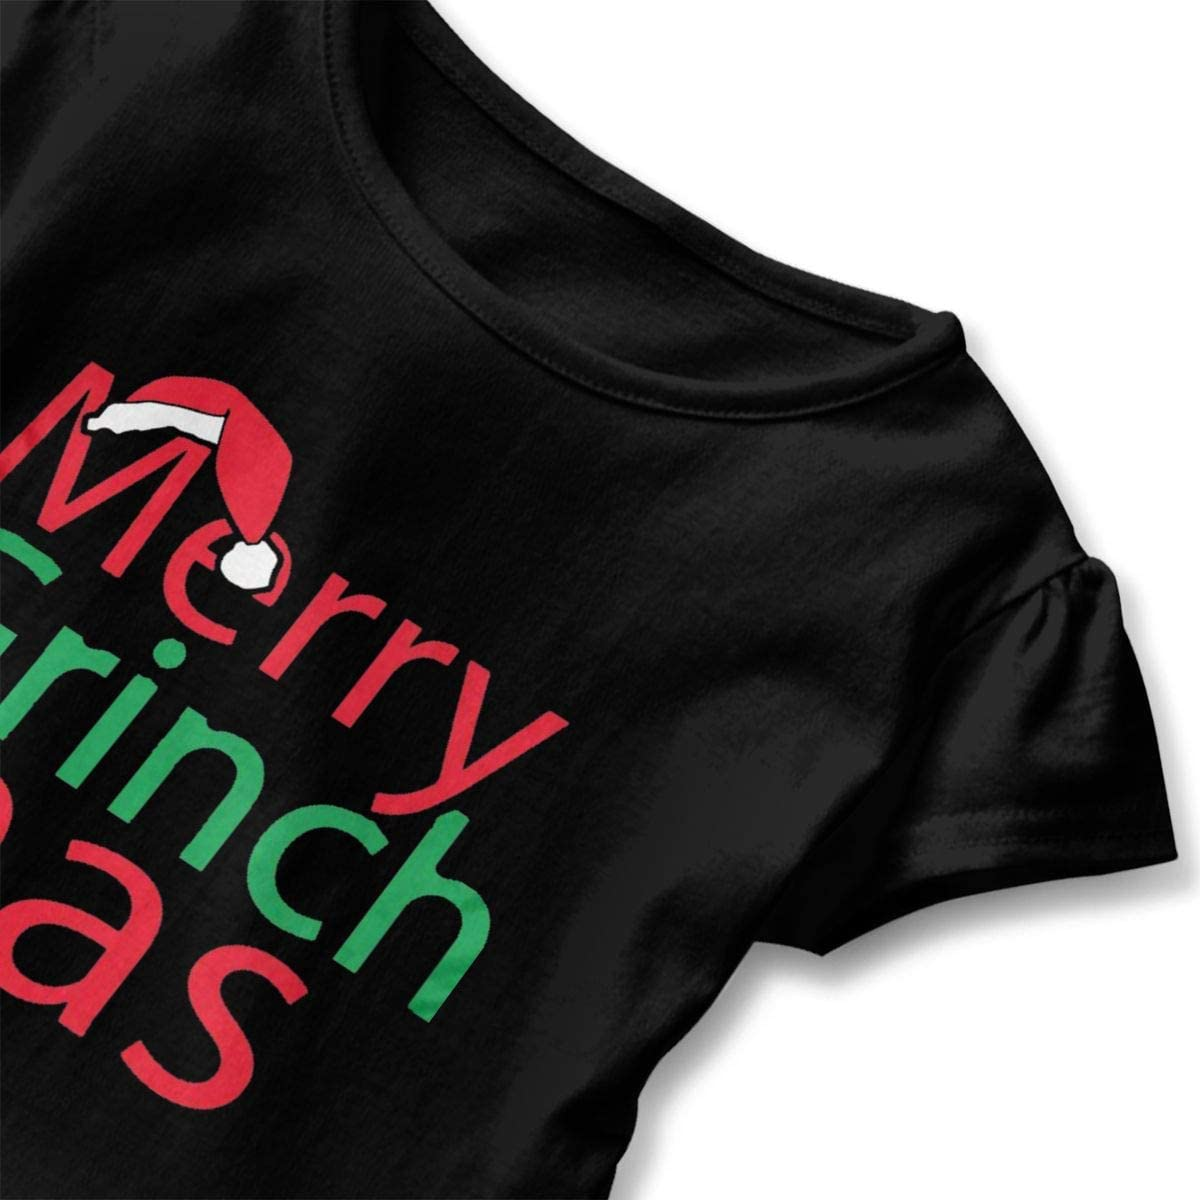 Merry Grinch Mas Shirt Baby Girls Flounced Cotton Tops for 2-6 Years Old Baby Black